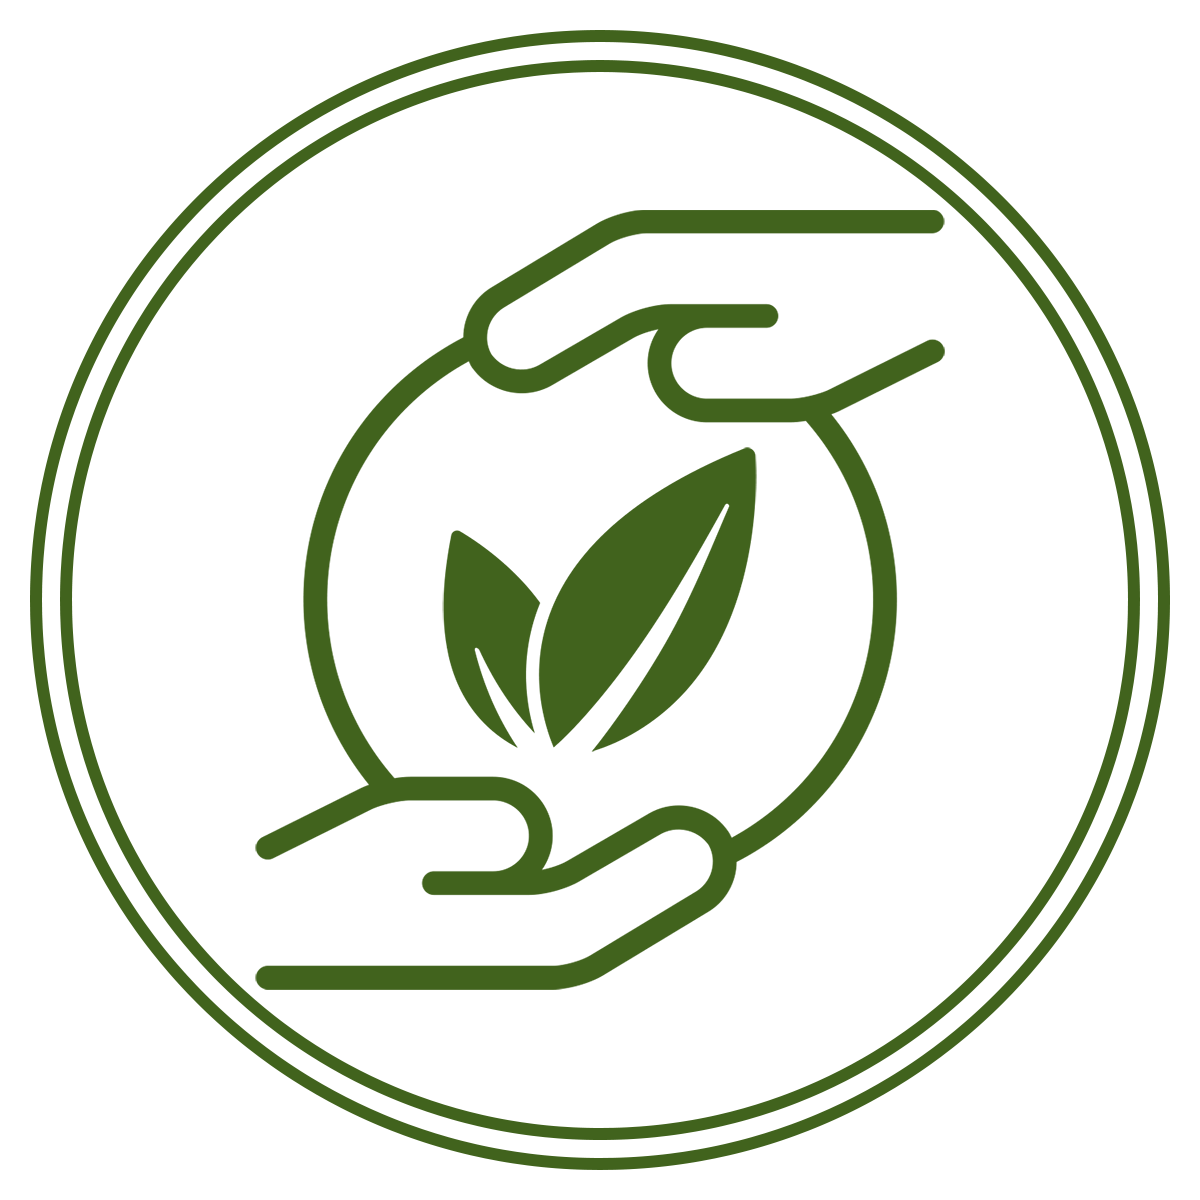 healing power of nature icon